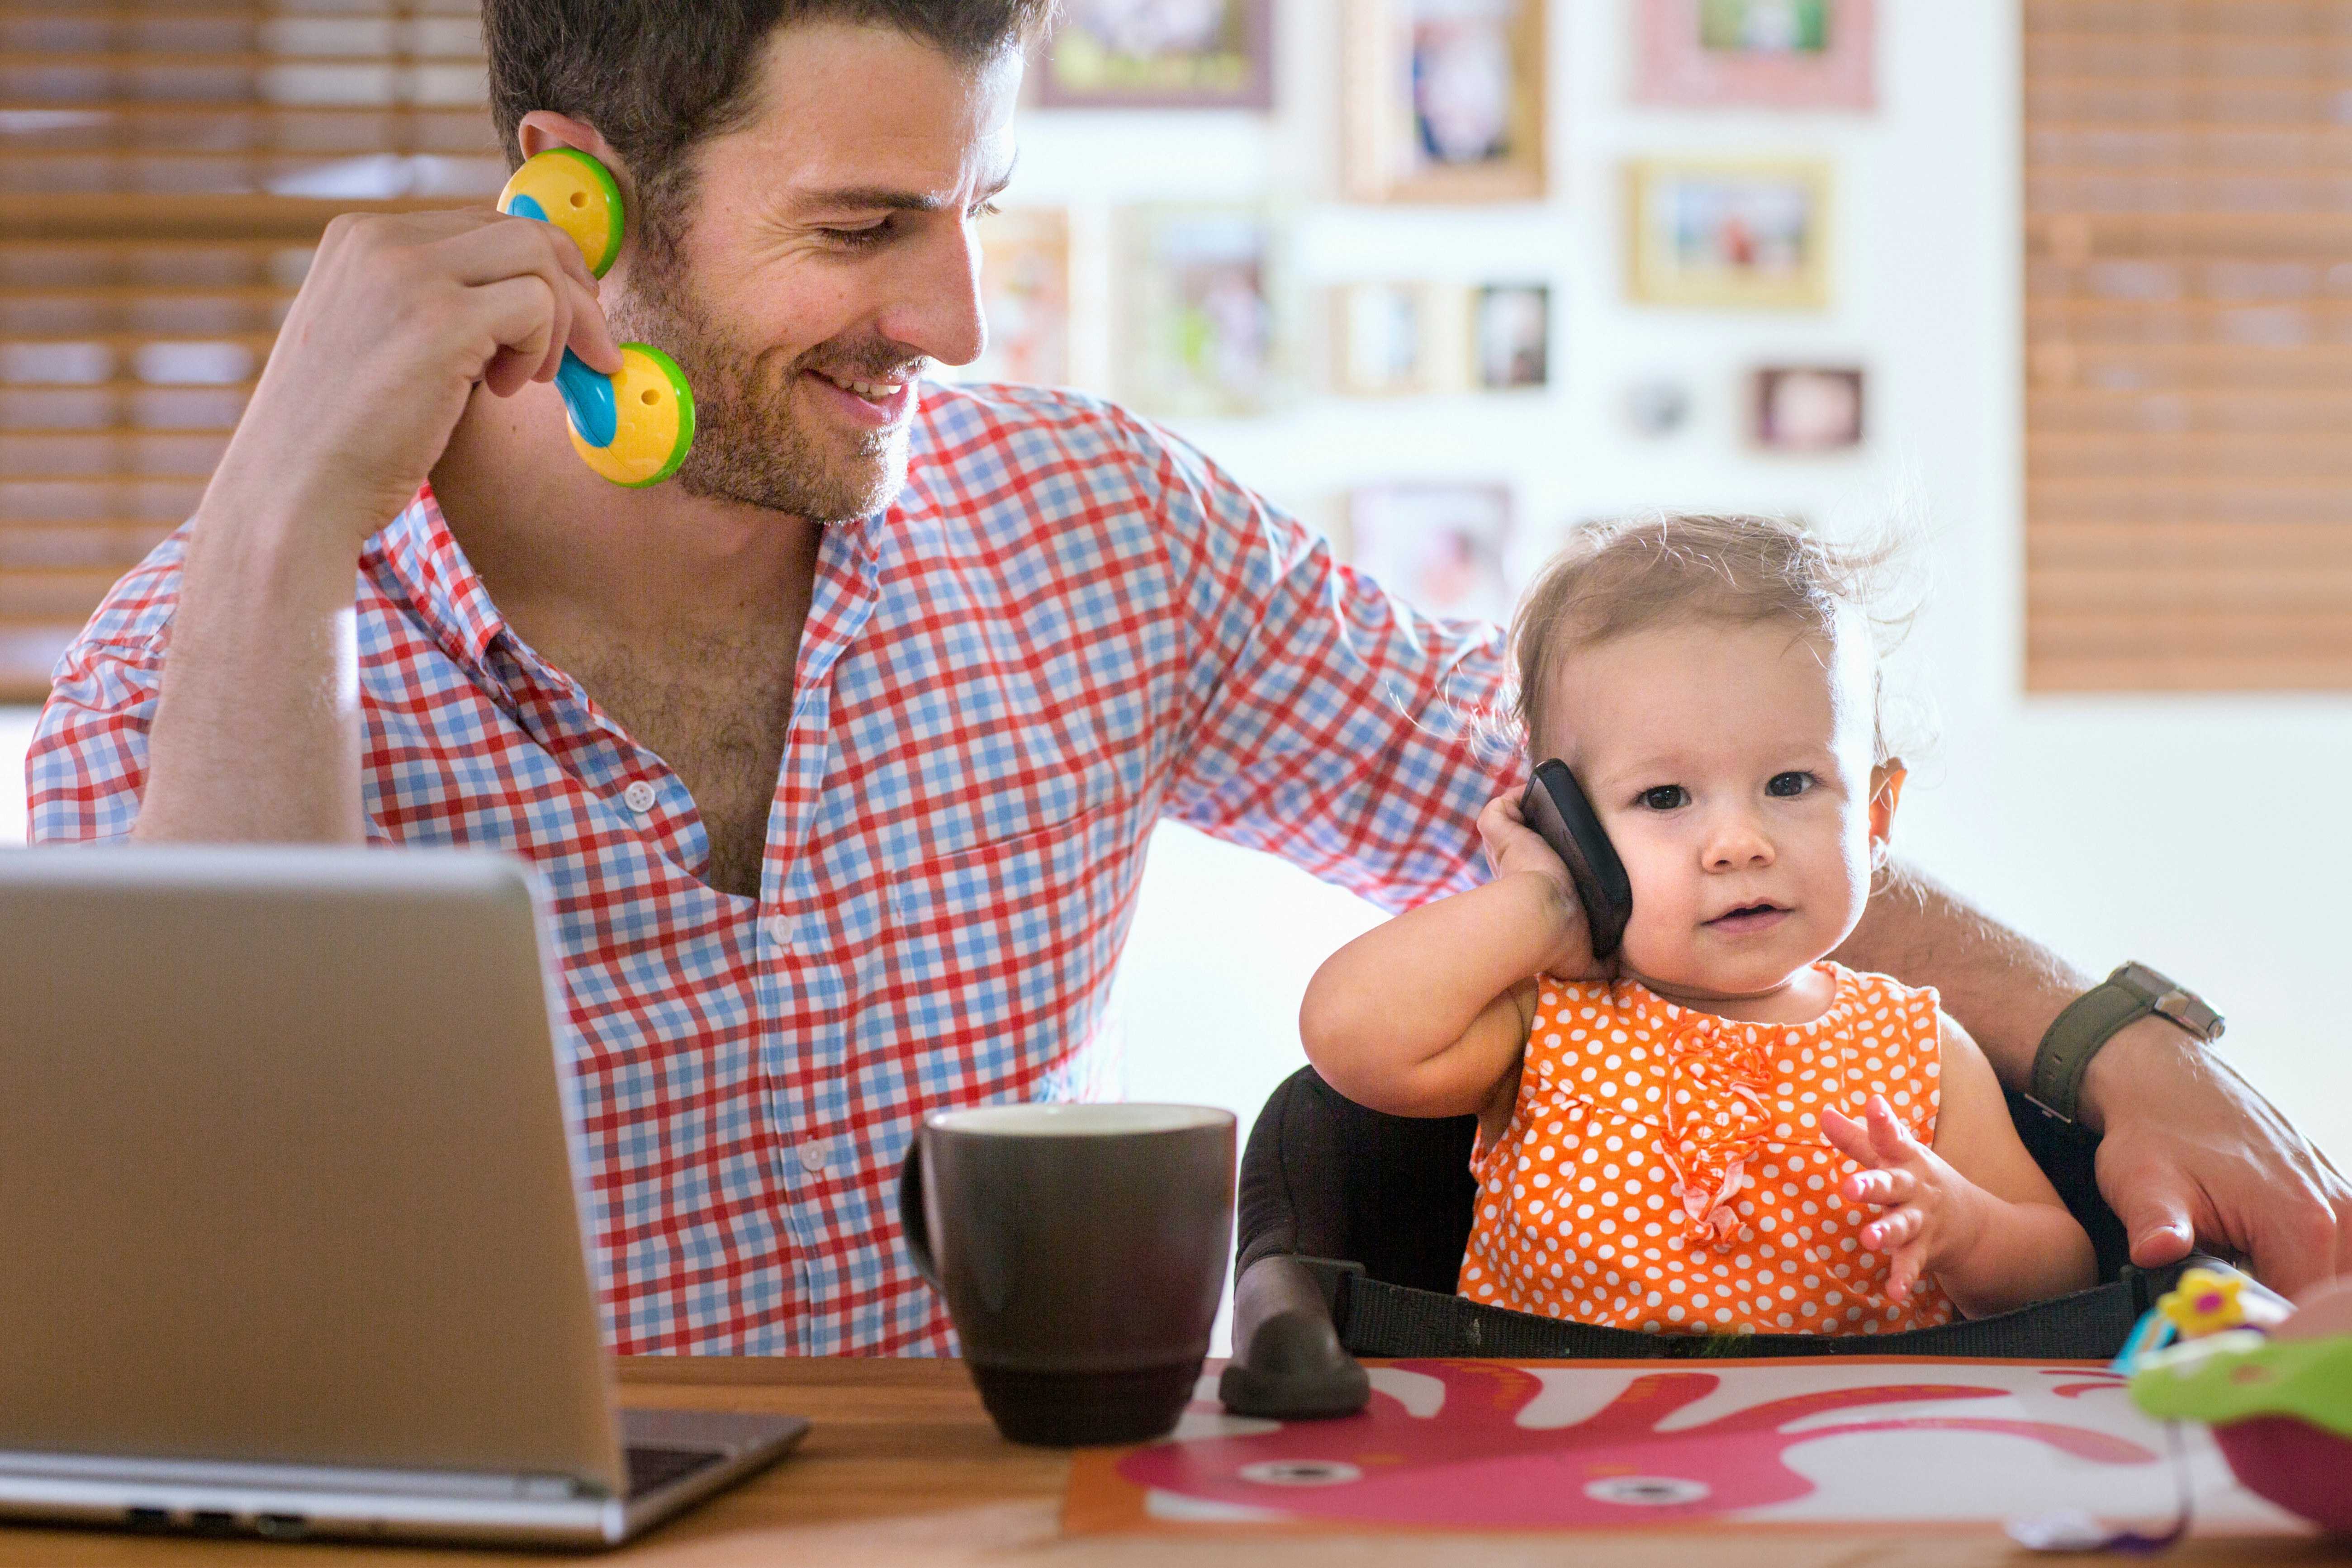 Paternity leave is not only good for families, it's good for business.